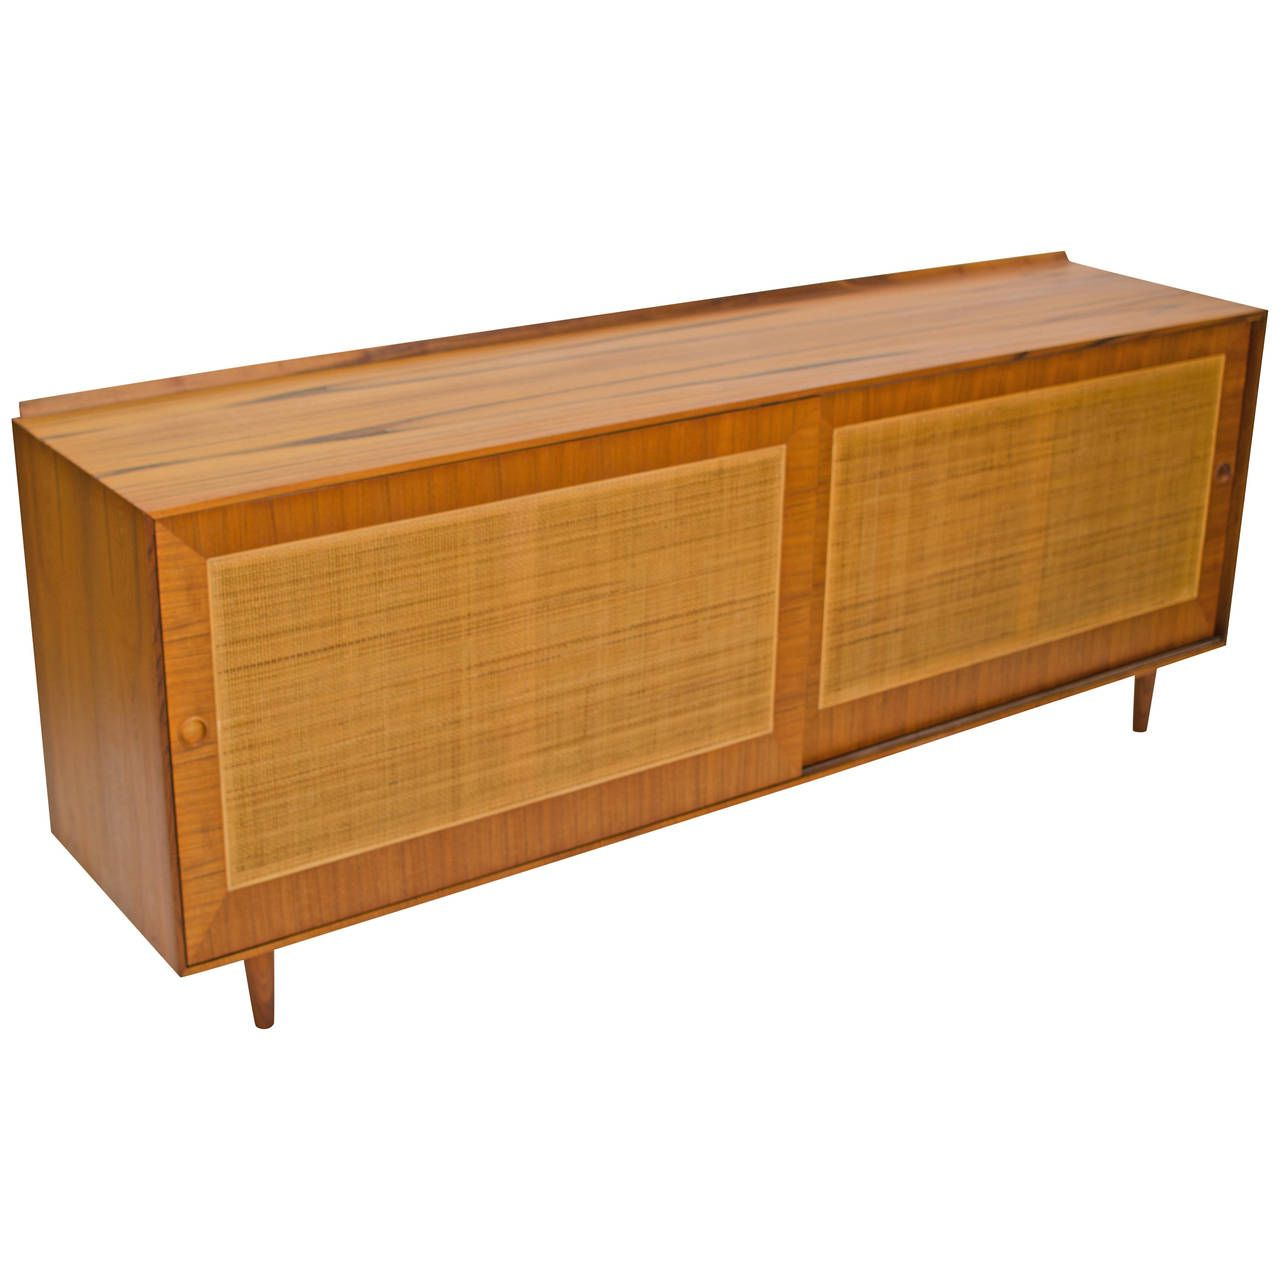 Finn Juhl Designed Sideboard, Circa 1952 | Modern Cane For Womack Sideboards (View 20 of 20)